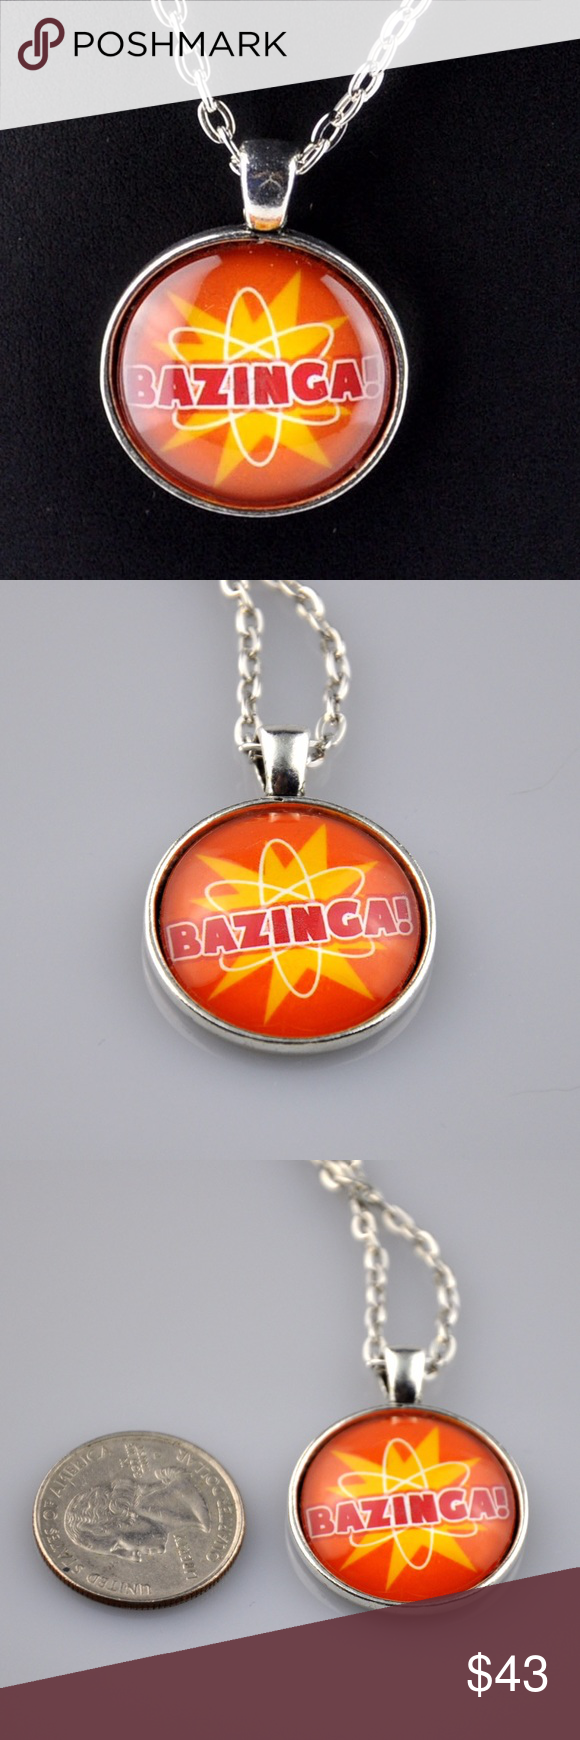 "Handmade Orange ""Bazinga"" Big Bang Theory Pendant What better way to channel you inner Sheldon Cooper than with this handmade Bazinga pendant. Pendant made with a high quality printed image sealed behind a high quality glass bezel that makes the colors POP! Then mounted in an antique silver tone tray. Pendant only 1"" round and this Big Bang theory necklace comes with matching 24"" chain necklace. Hand assembled so small air bubbles may be present. Not waterproof. Smoke free pet friendly home…"